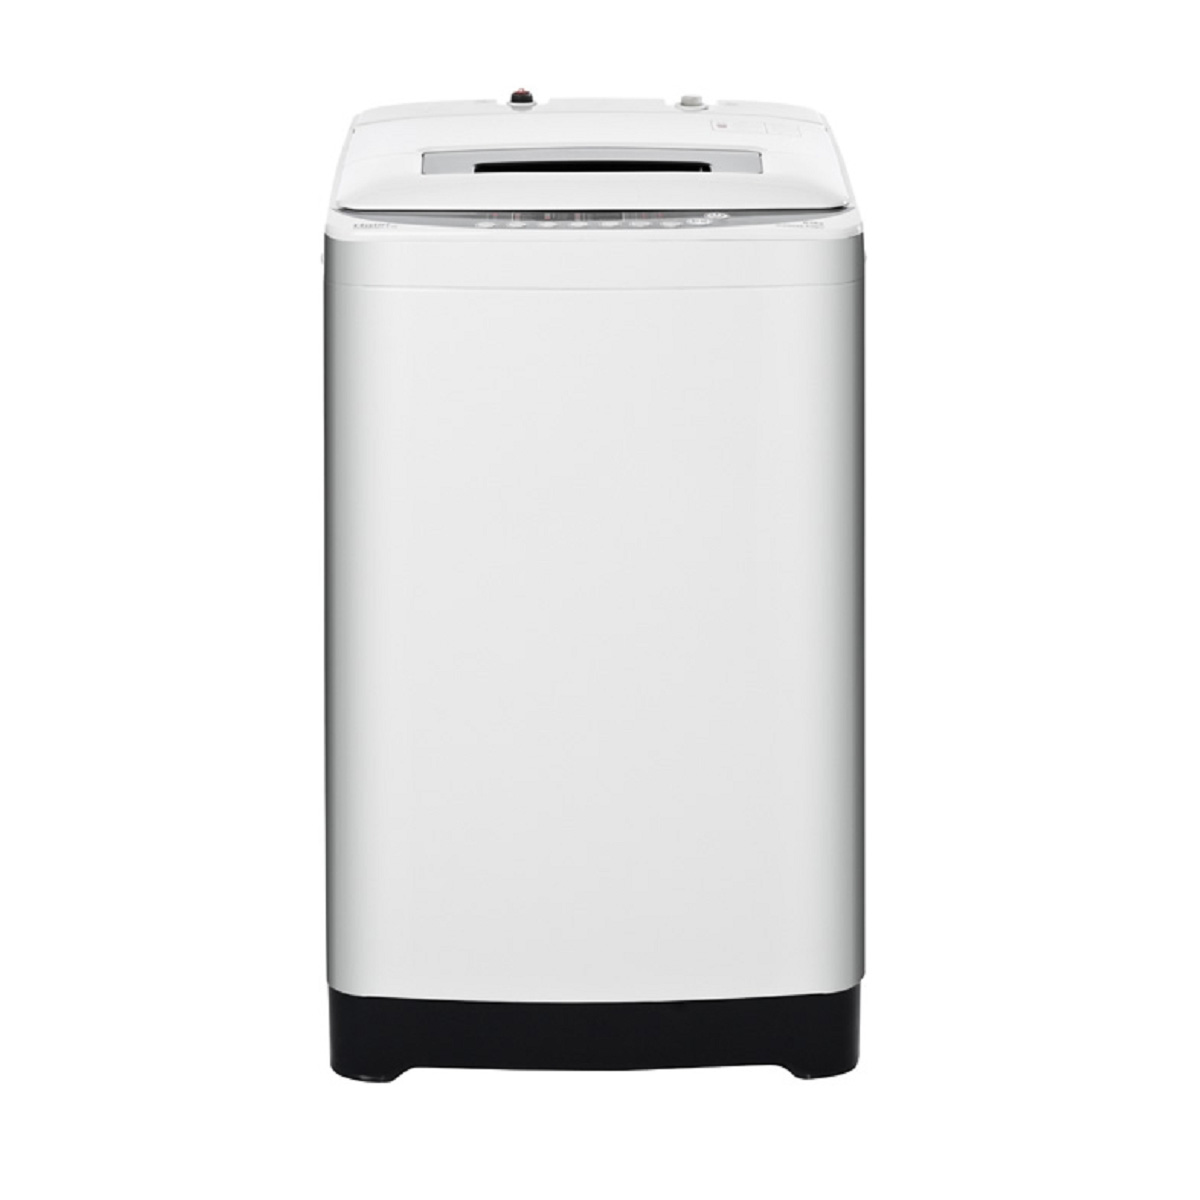 haier washing machine haier hwmp65 918 top load washing machine up to 60 12985